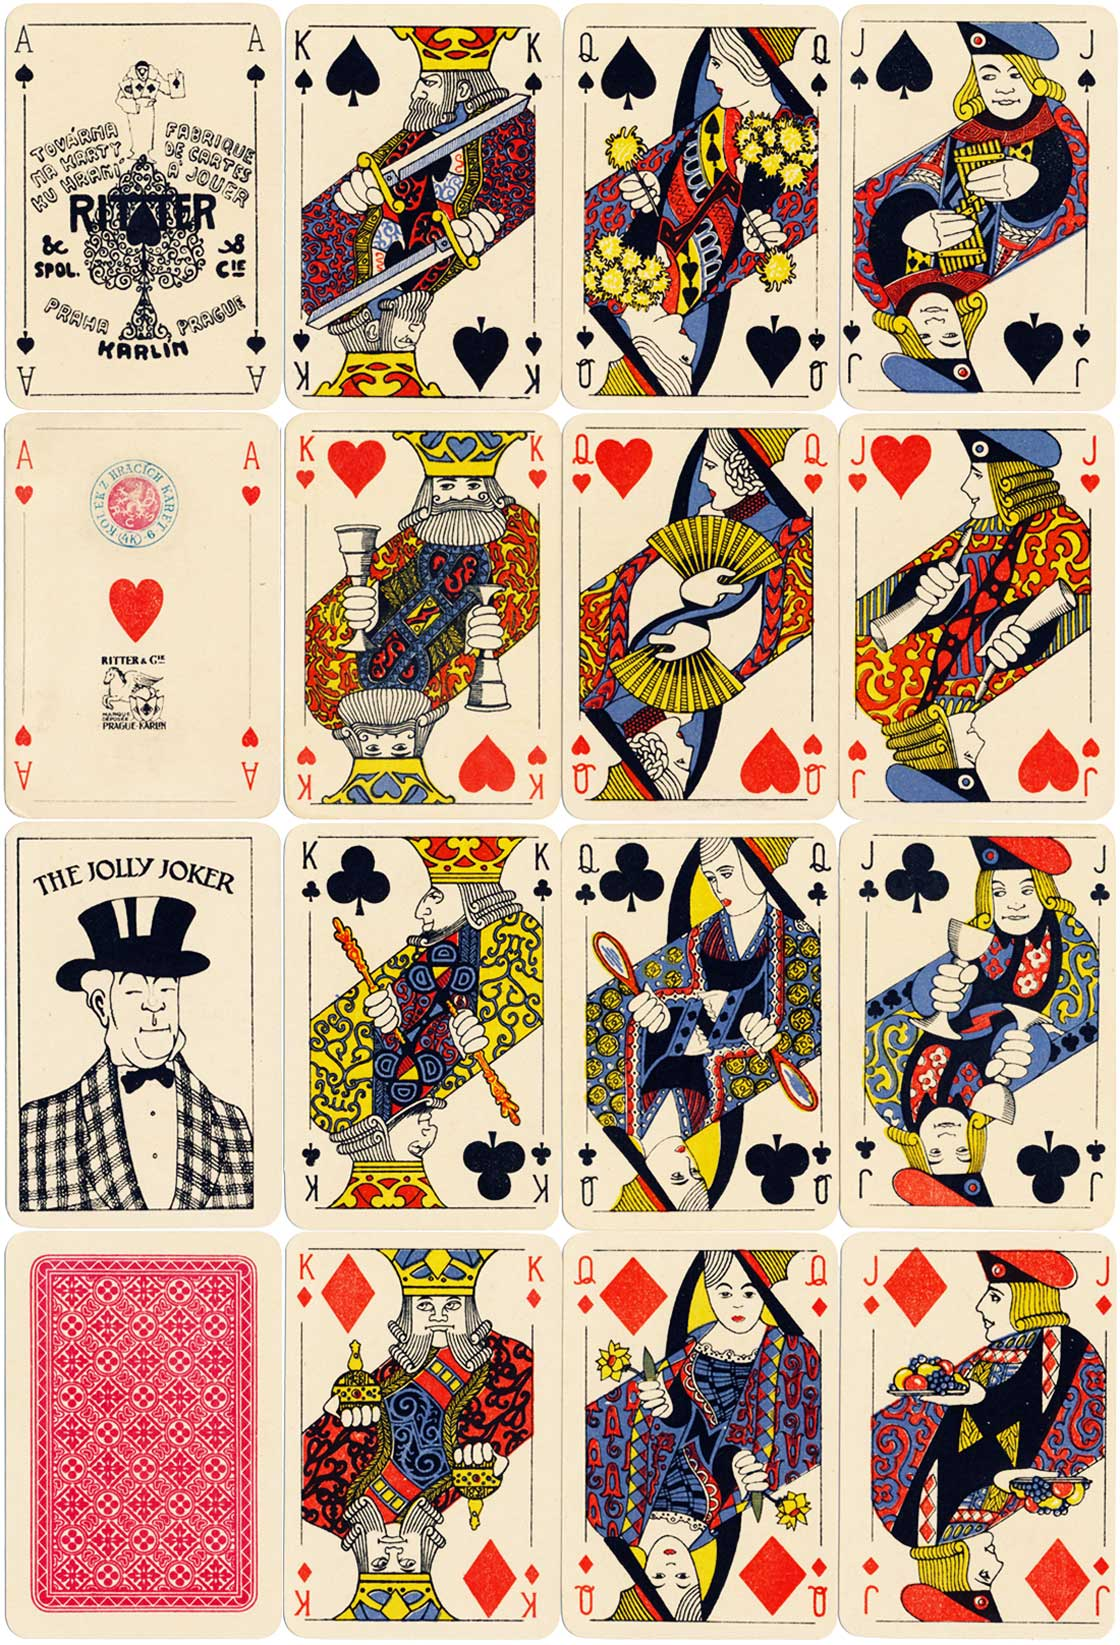 Art Deco style playing cards by Ritter & Cie, Prague, 1933